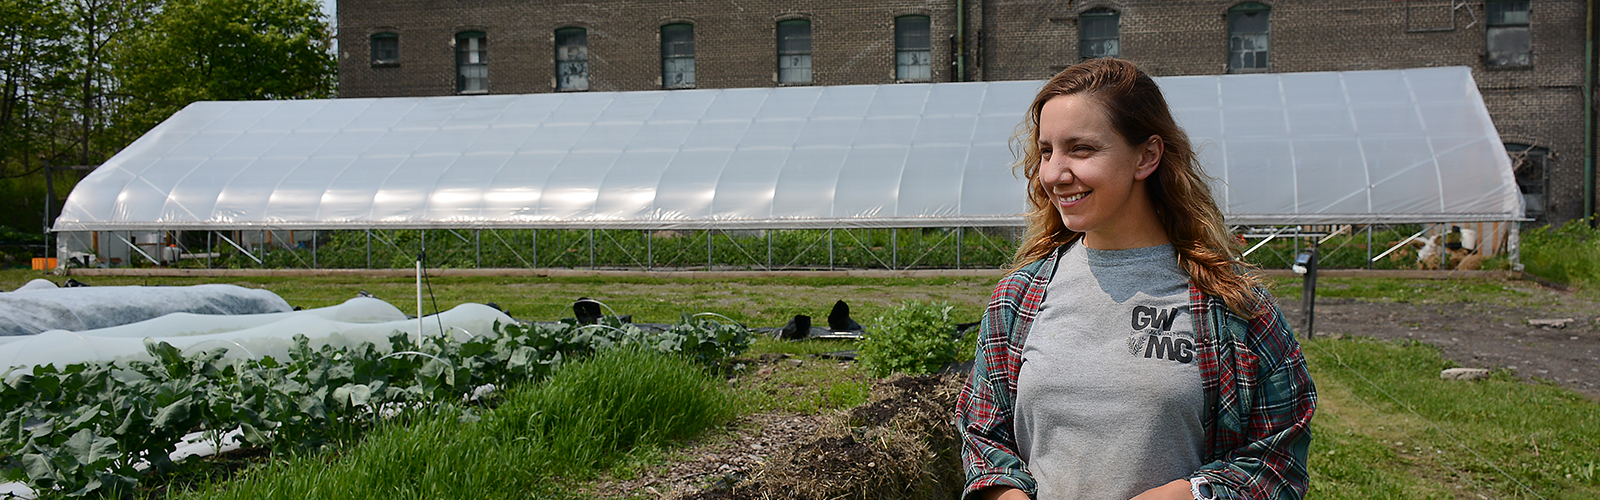 Groundwork Market Garden co-owner Mayda Pozantides stands in a field of freshly planted crops at 1698 Genesee St., in Buffalo.